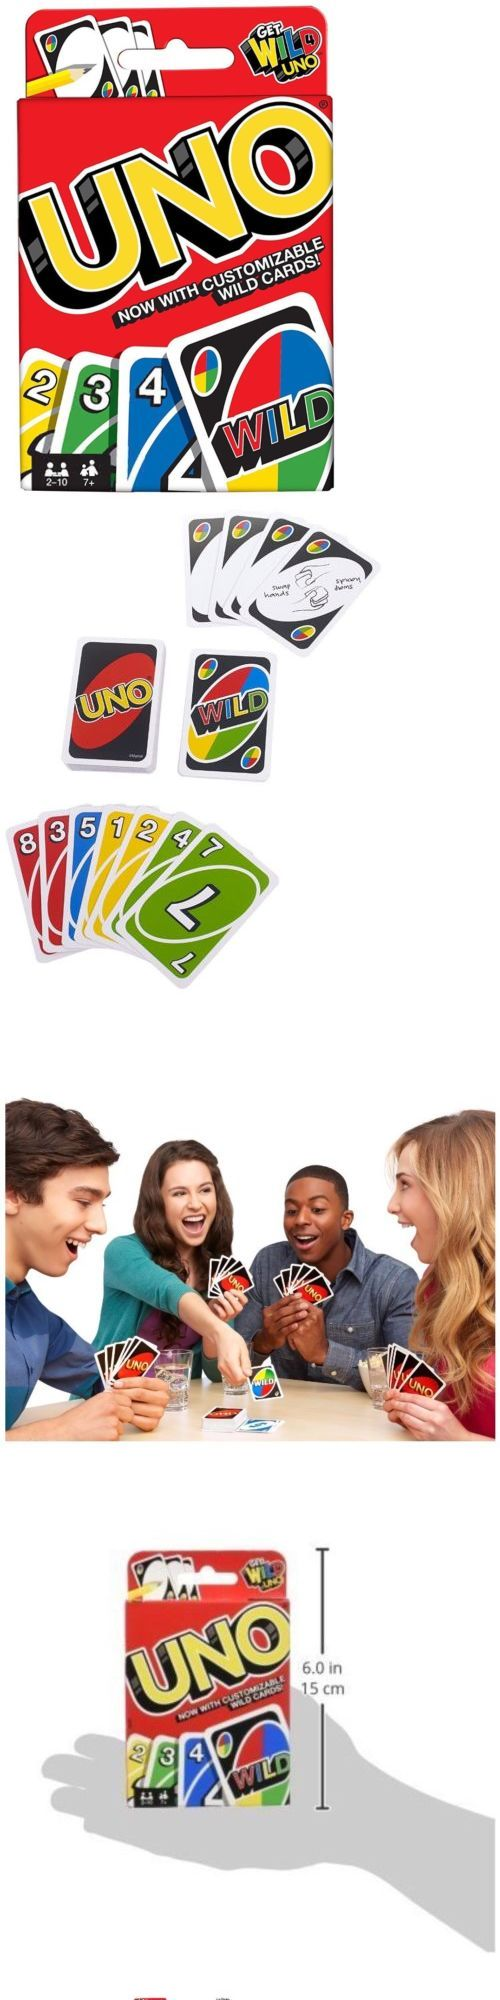 Card Games Contemporary 19082 Mattel Games 42003 Uno Card Game Buy It Now Only 10 67 On Ebay Card Games Uno Card Game Classic Card Games